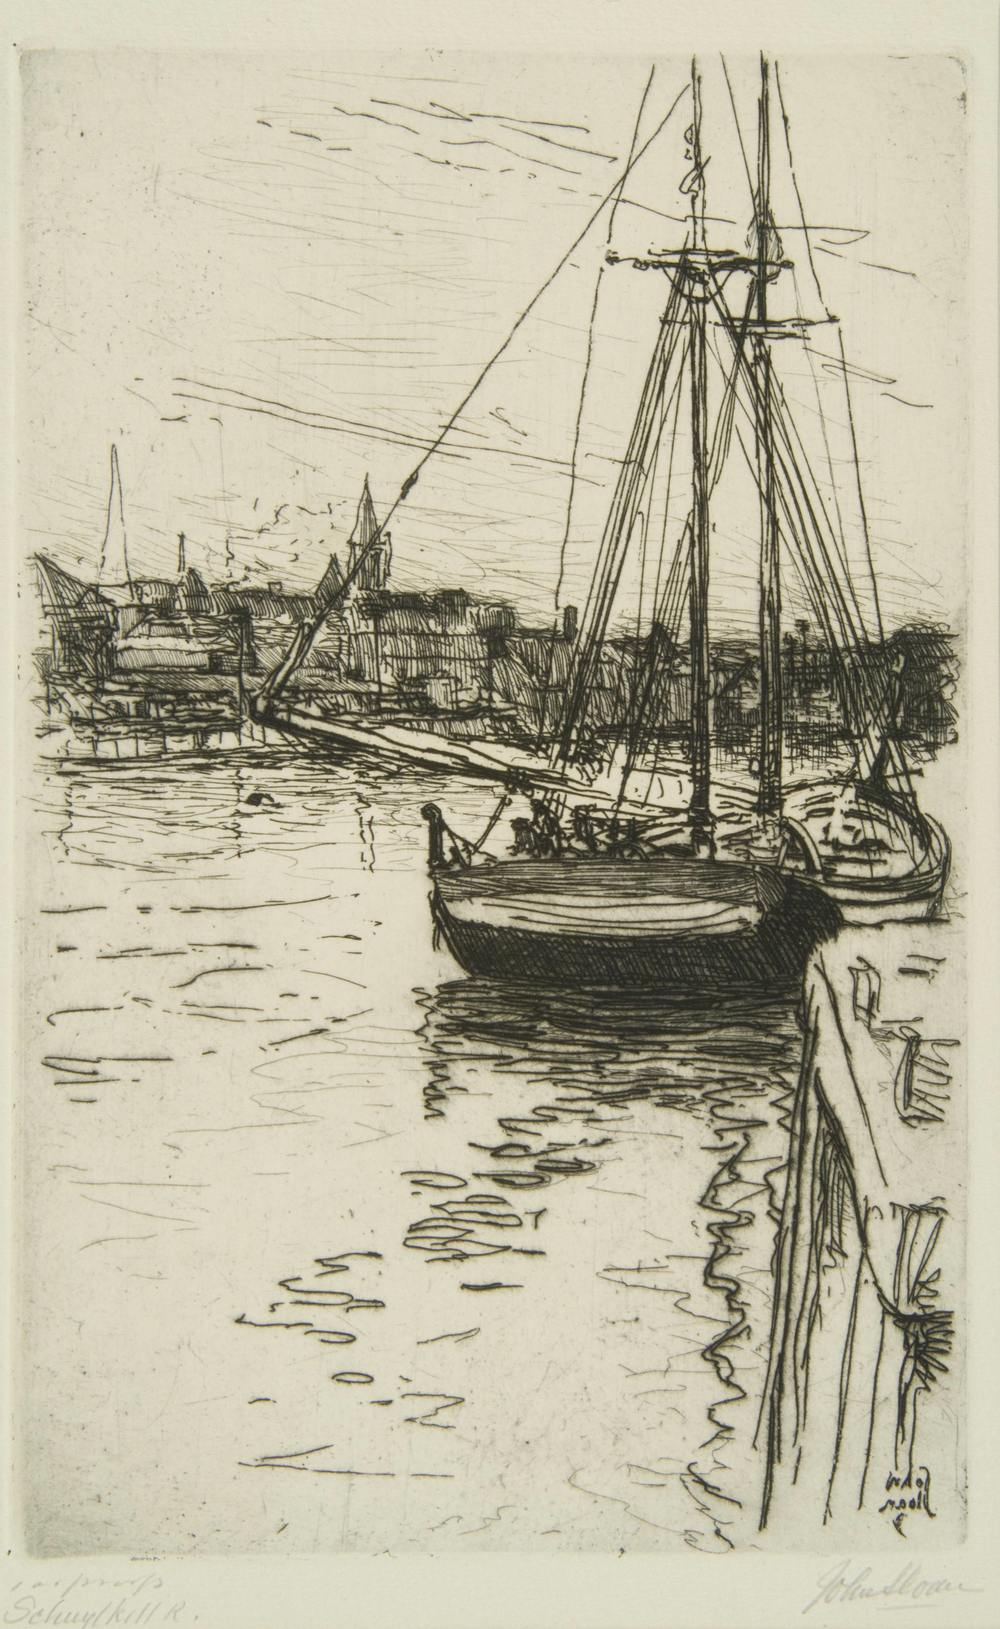 Etching of sailboat on water with buildings in background